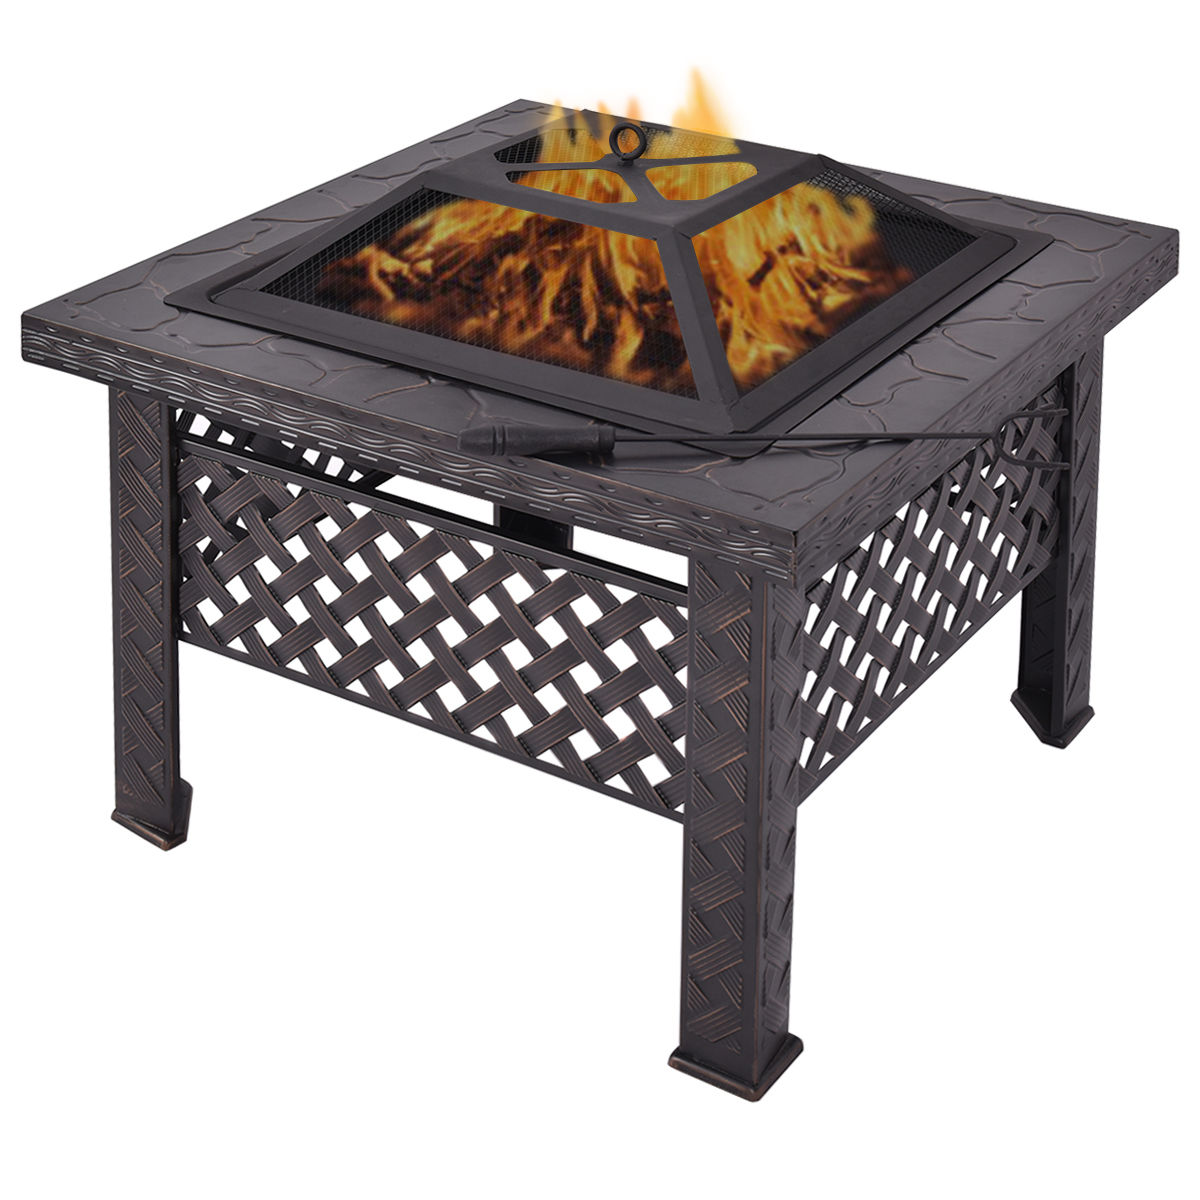 Costway 26'' Outdoor Metal Firepit Backyard Patio Garden Square Stove Firepit With Poker by Costway